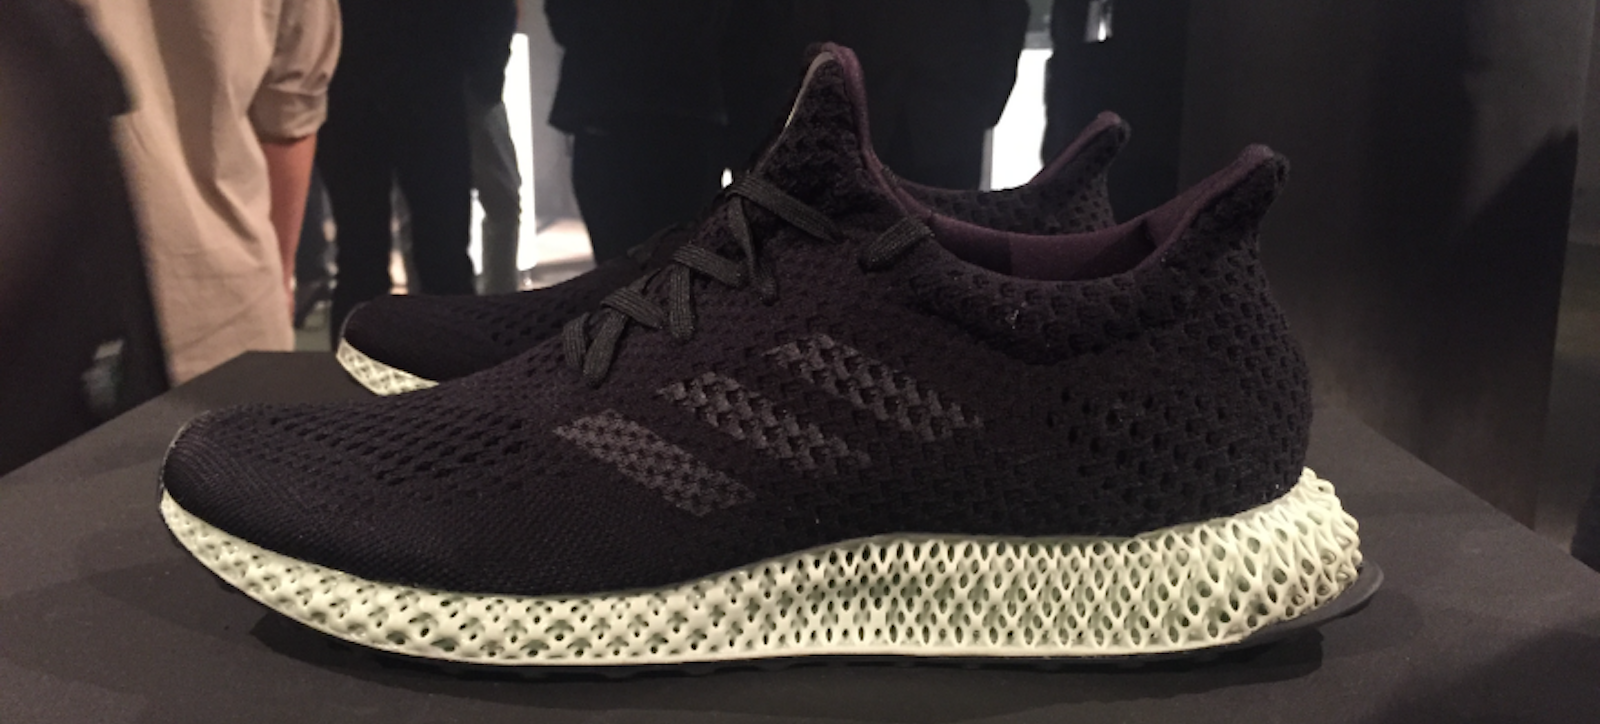 adidas Departs from Traditional 3D Printed Design with Help from Carbon's  Digital Light Synthesis - Core77